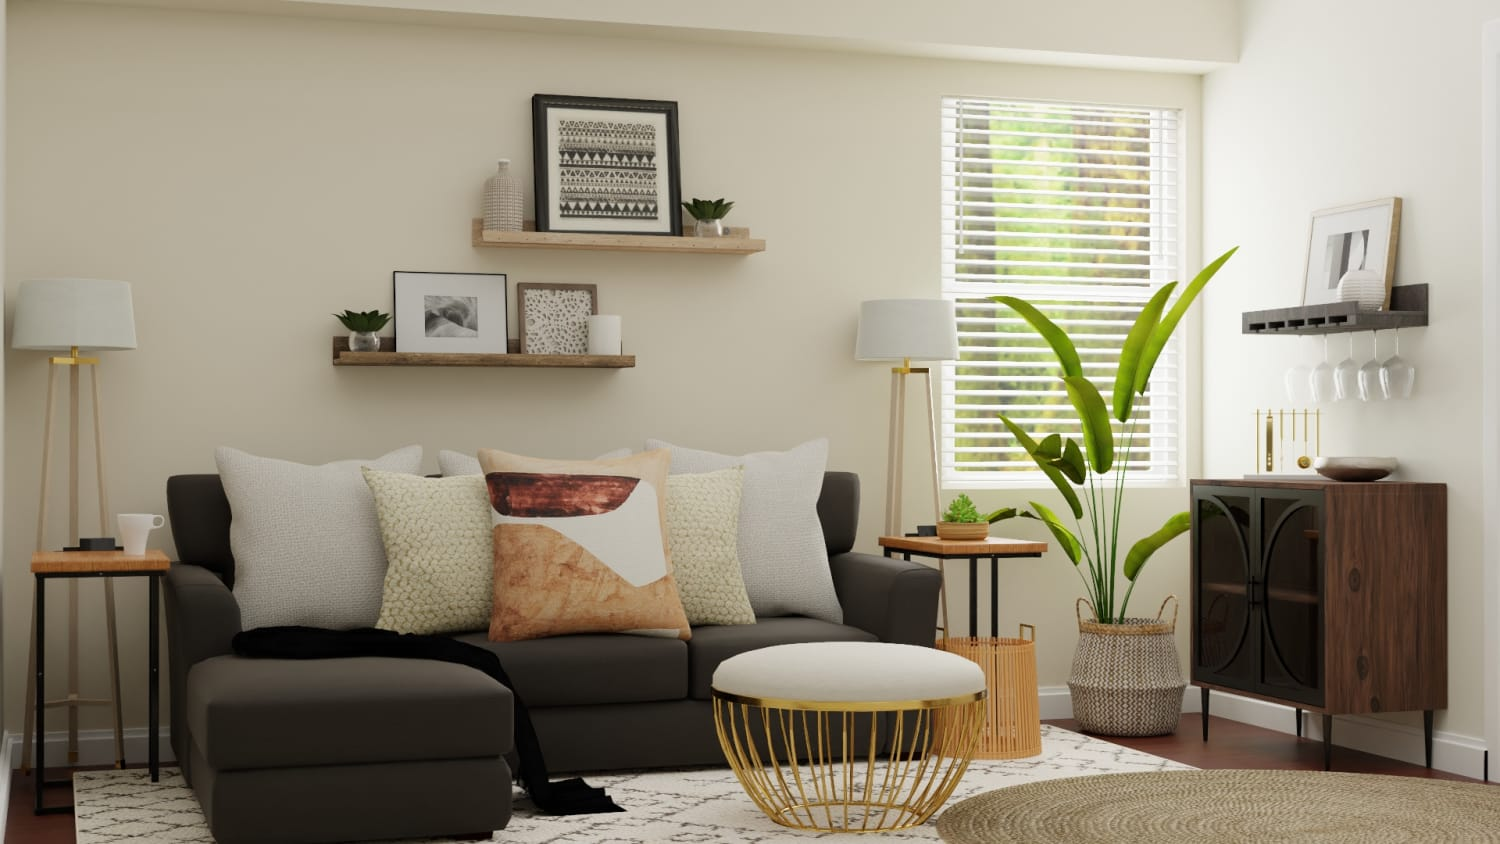 Small Spaces:  Mid Century Glam Living Room Design By Spacejoy